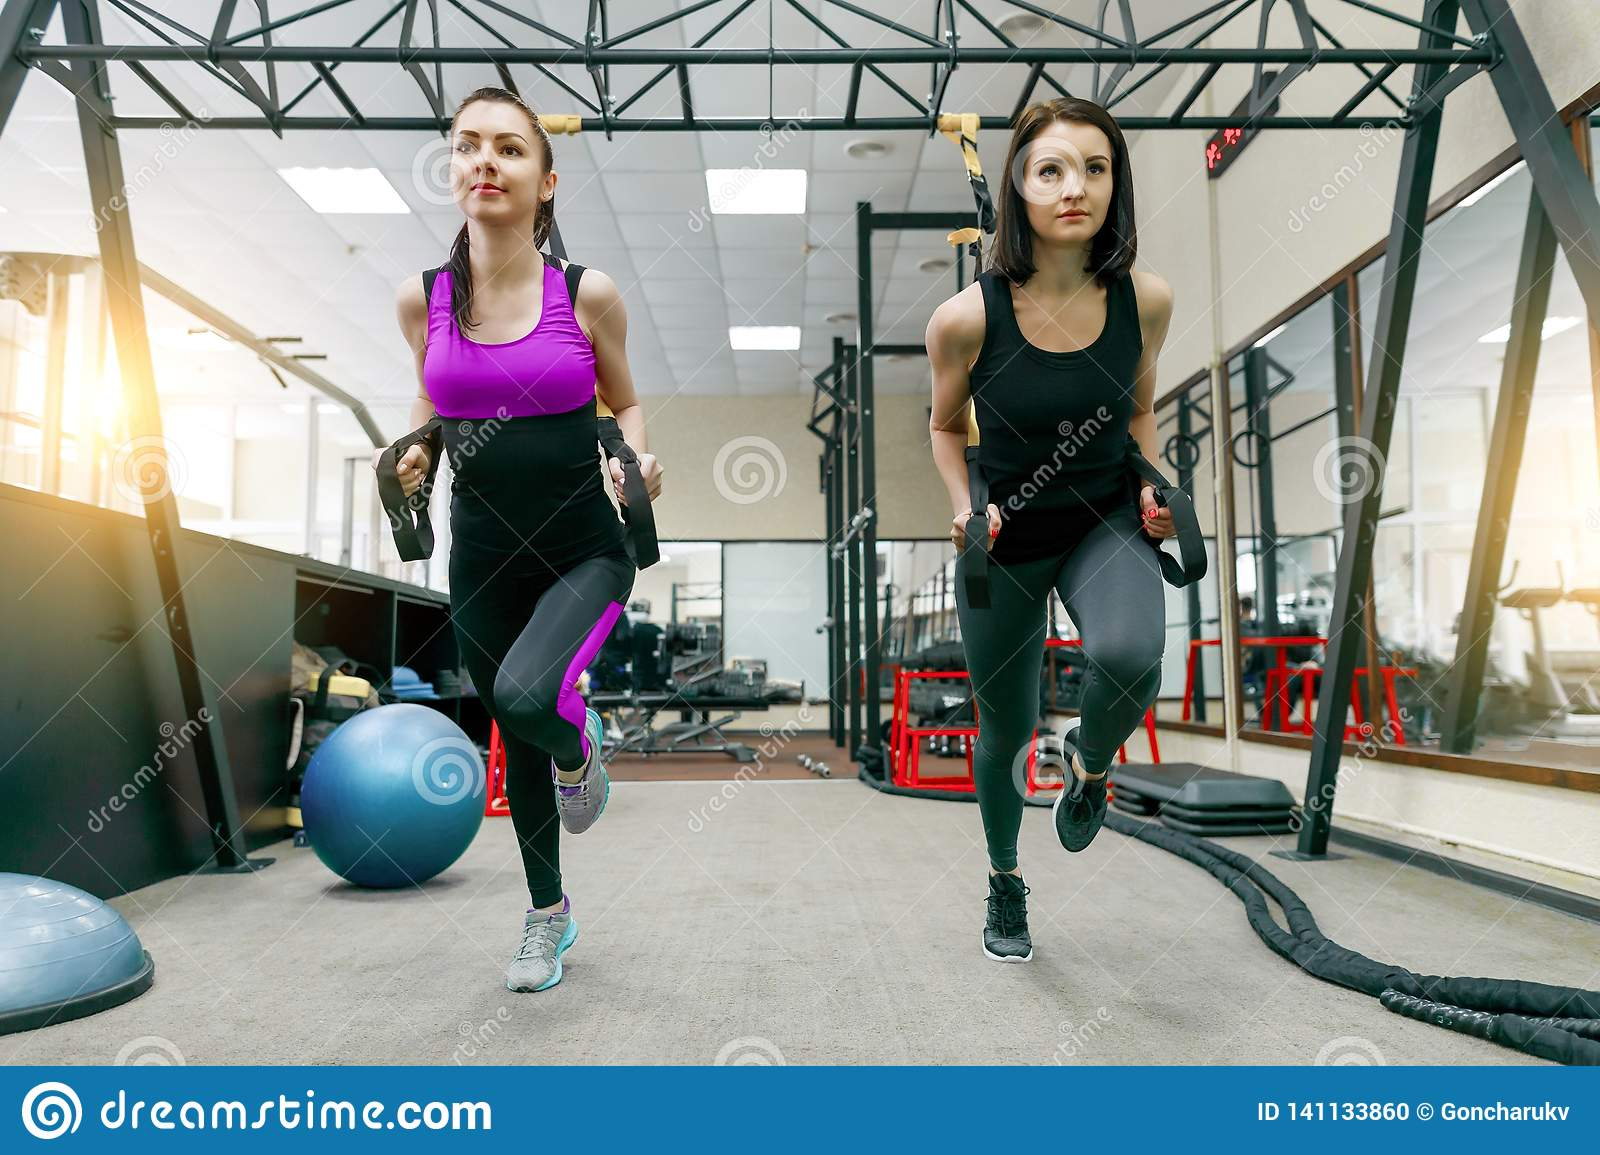 Group Training With Loops In Gym, Two Young Attractive Fitness Women Doing Cross  Fit With Straps System. Sport, Teamwork, Training Stock Photo - Image of  push, body: 141133860